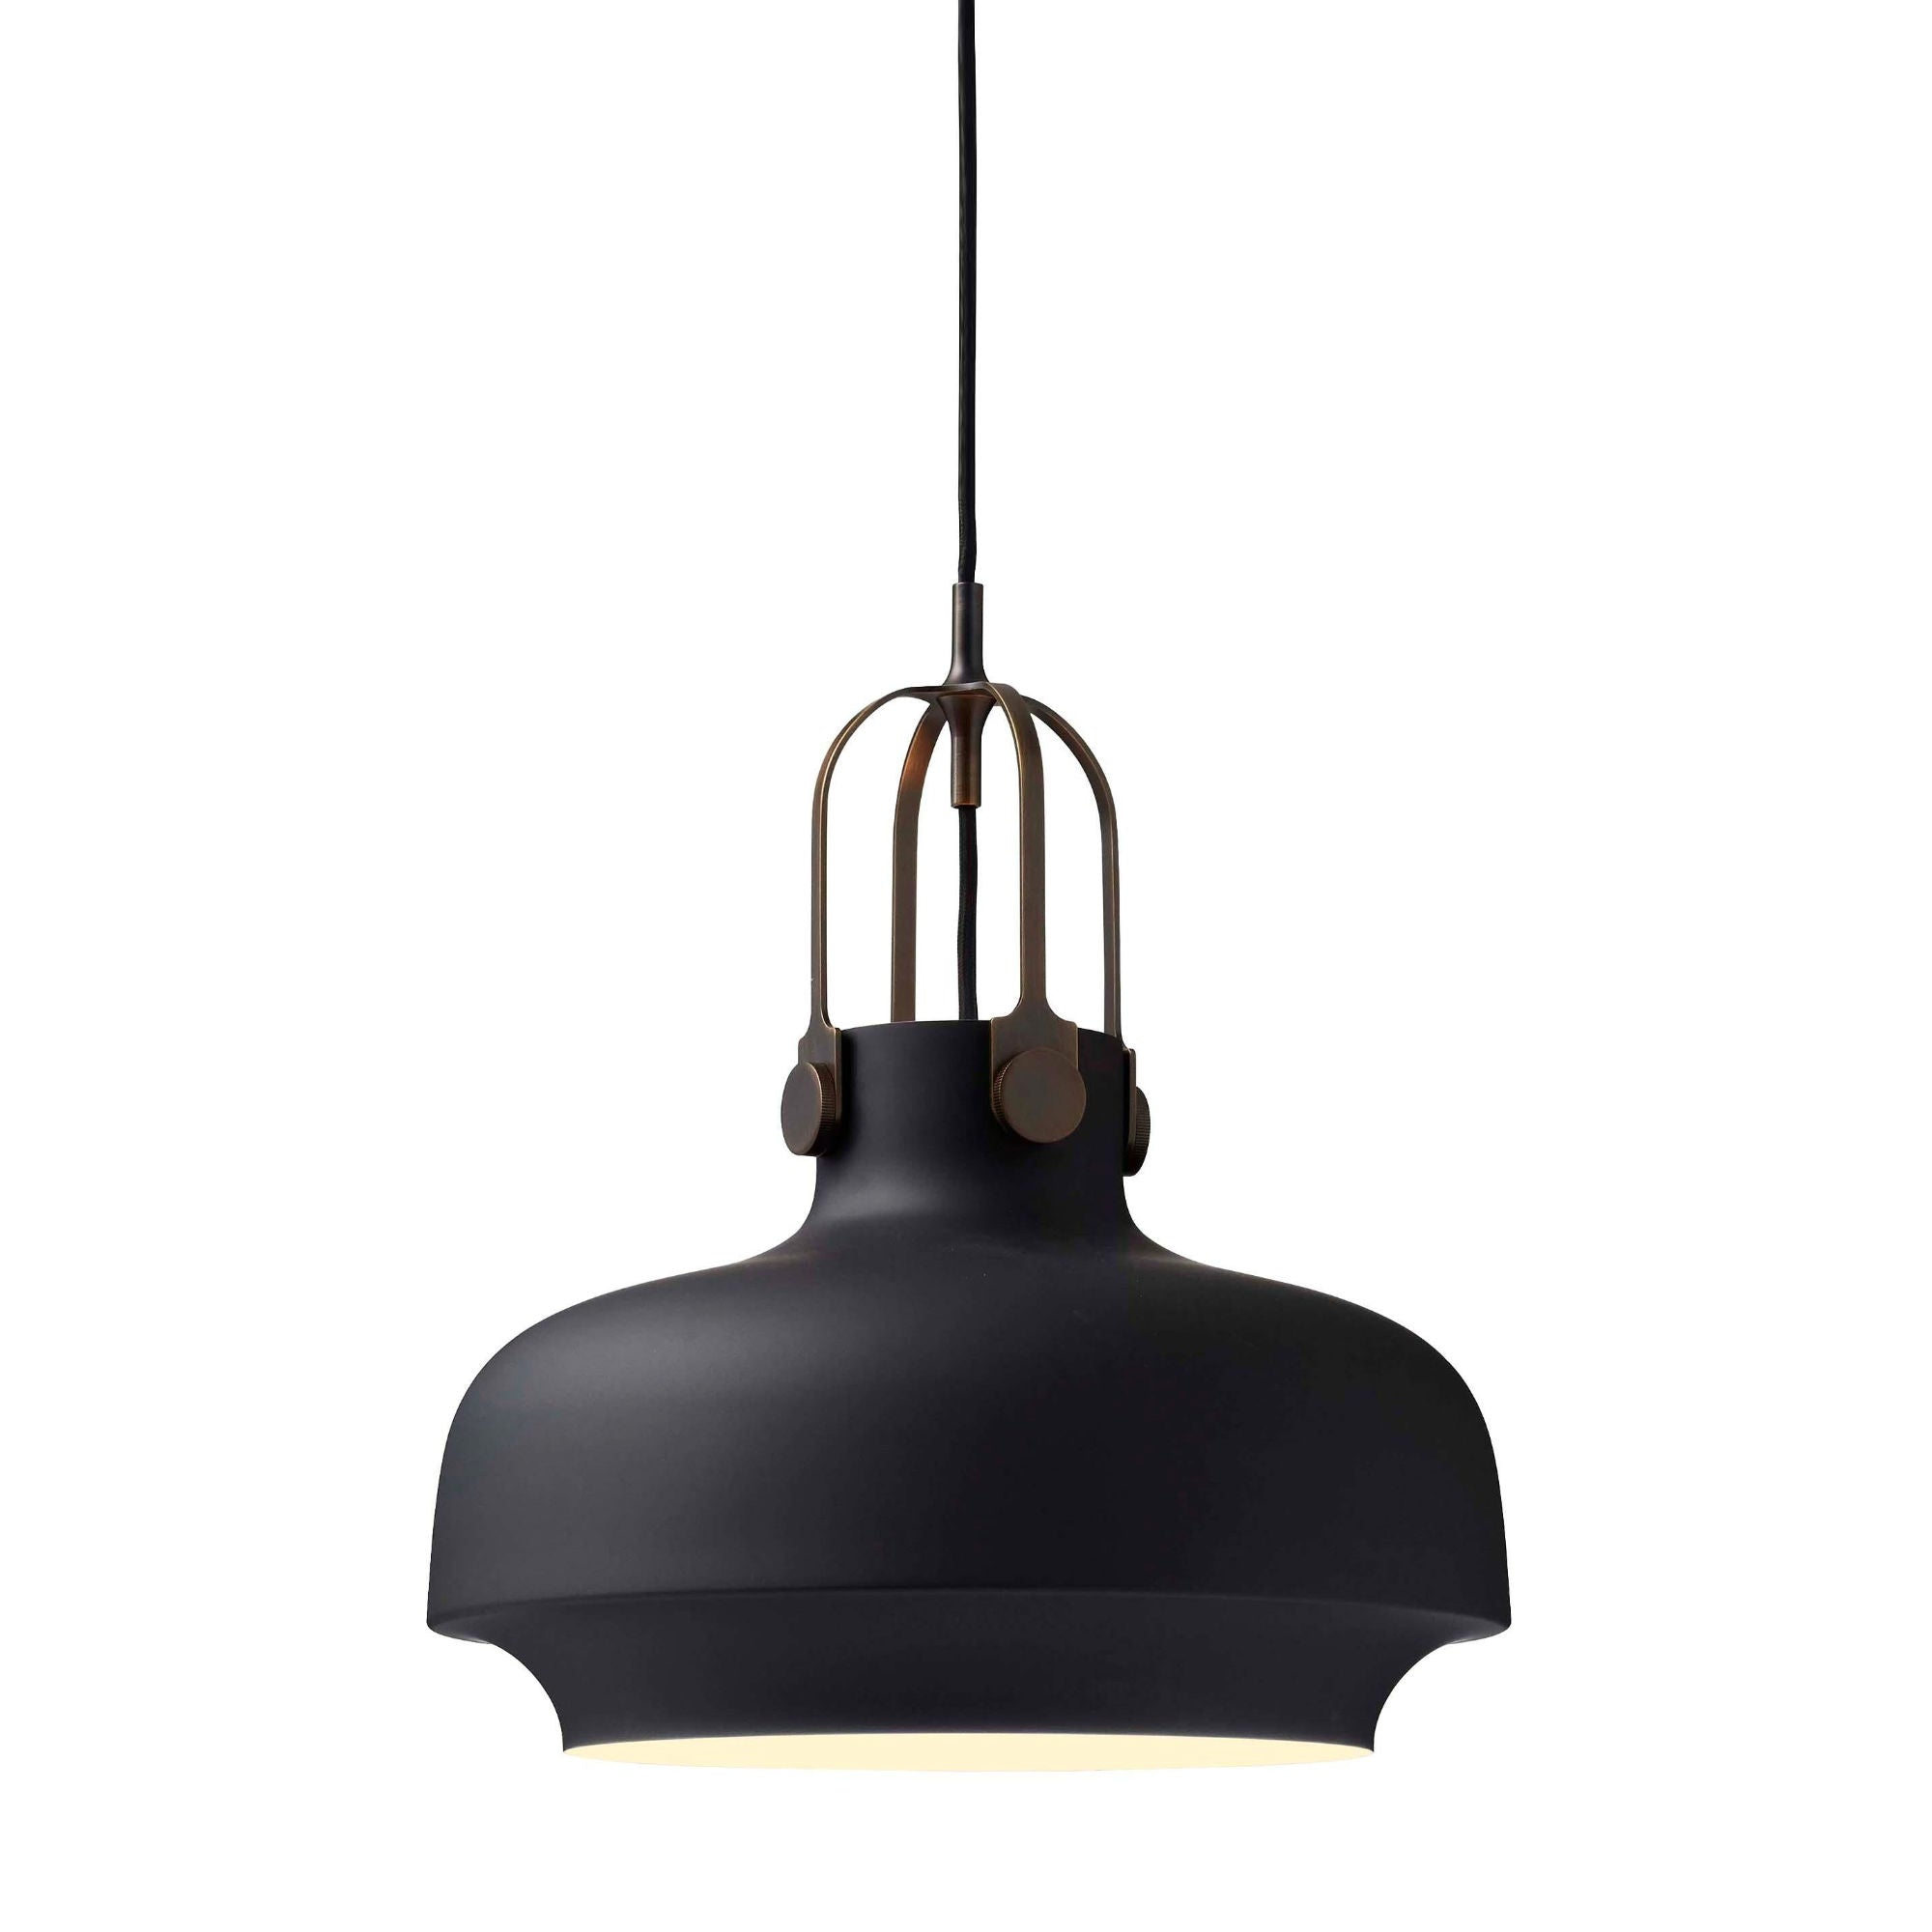 &Tradition SC7 Copenhagen pendant light, matt black - bronzed brass suspension